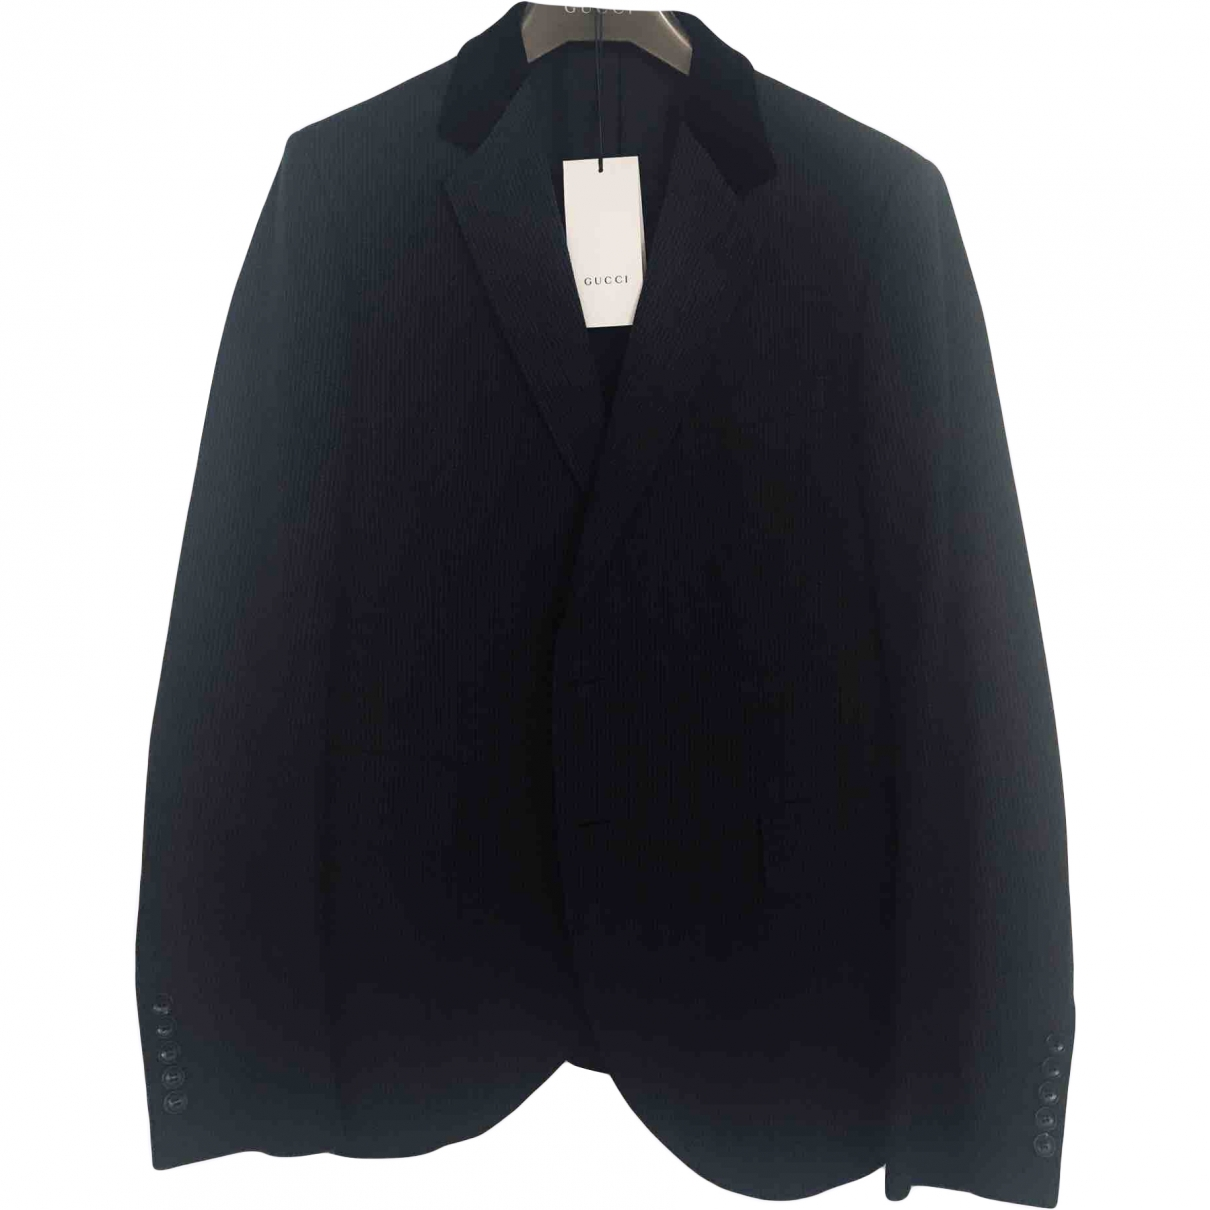 Gucci \N Black Cotton jacket  for Men 50 IT